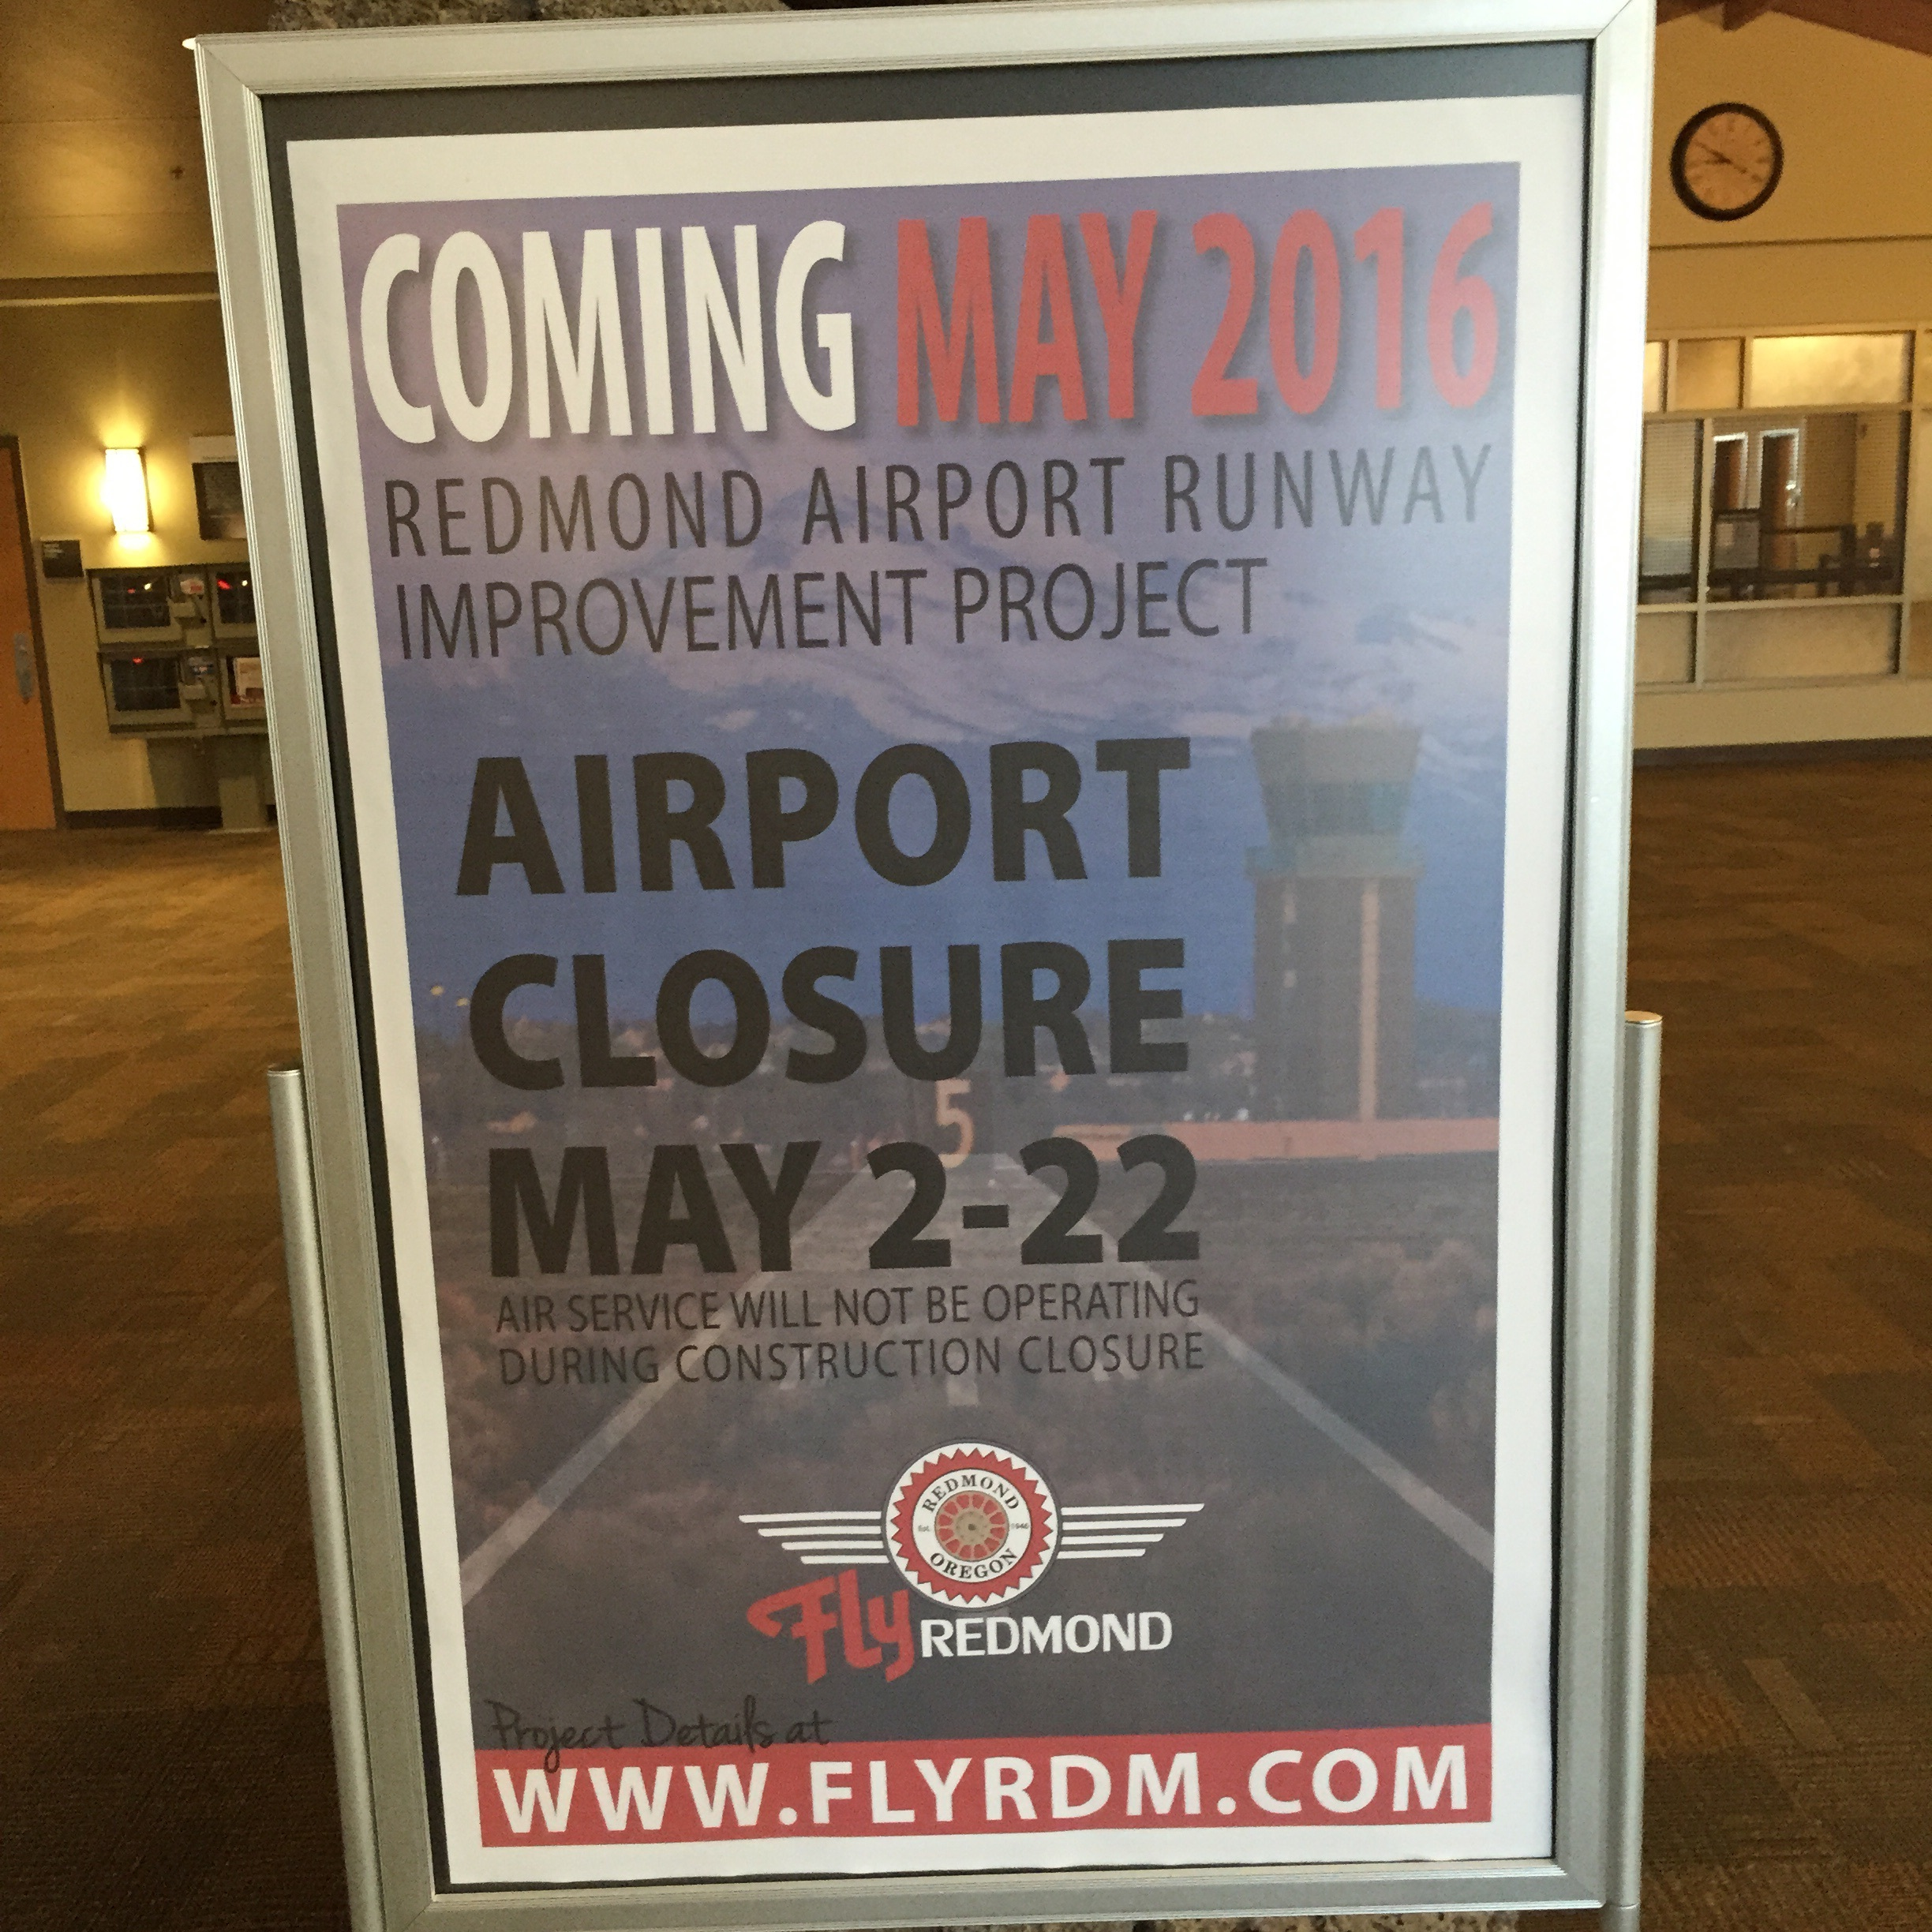 Redmond Airport Closure